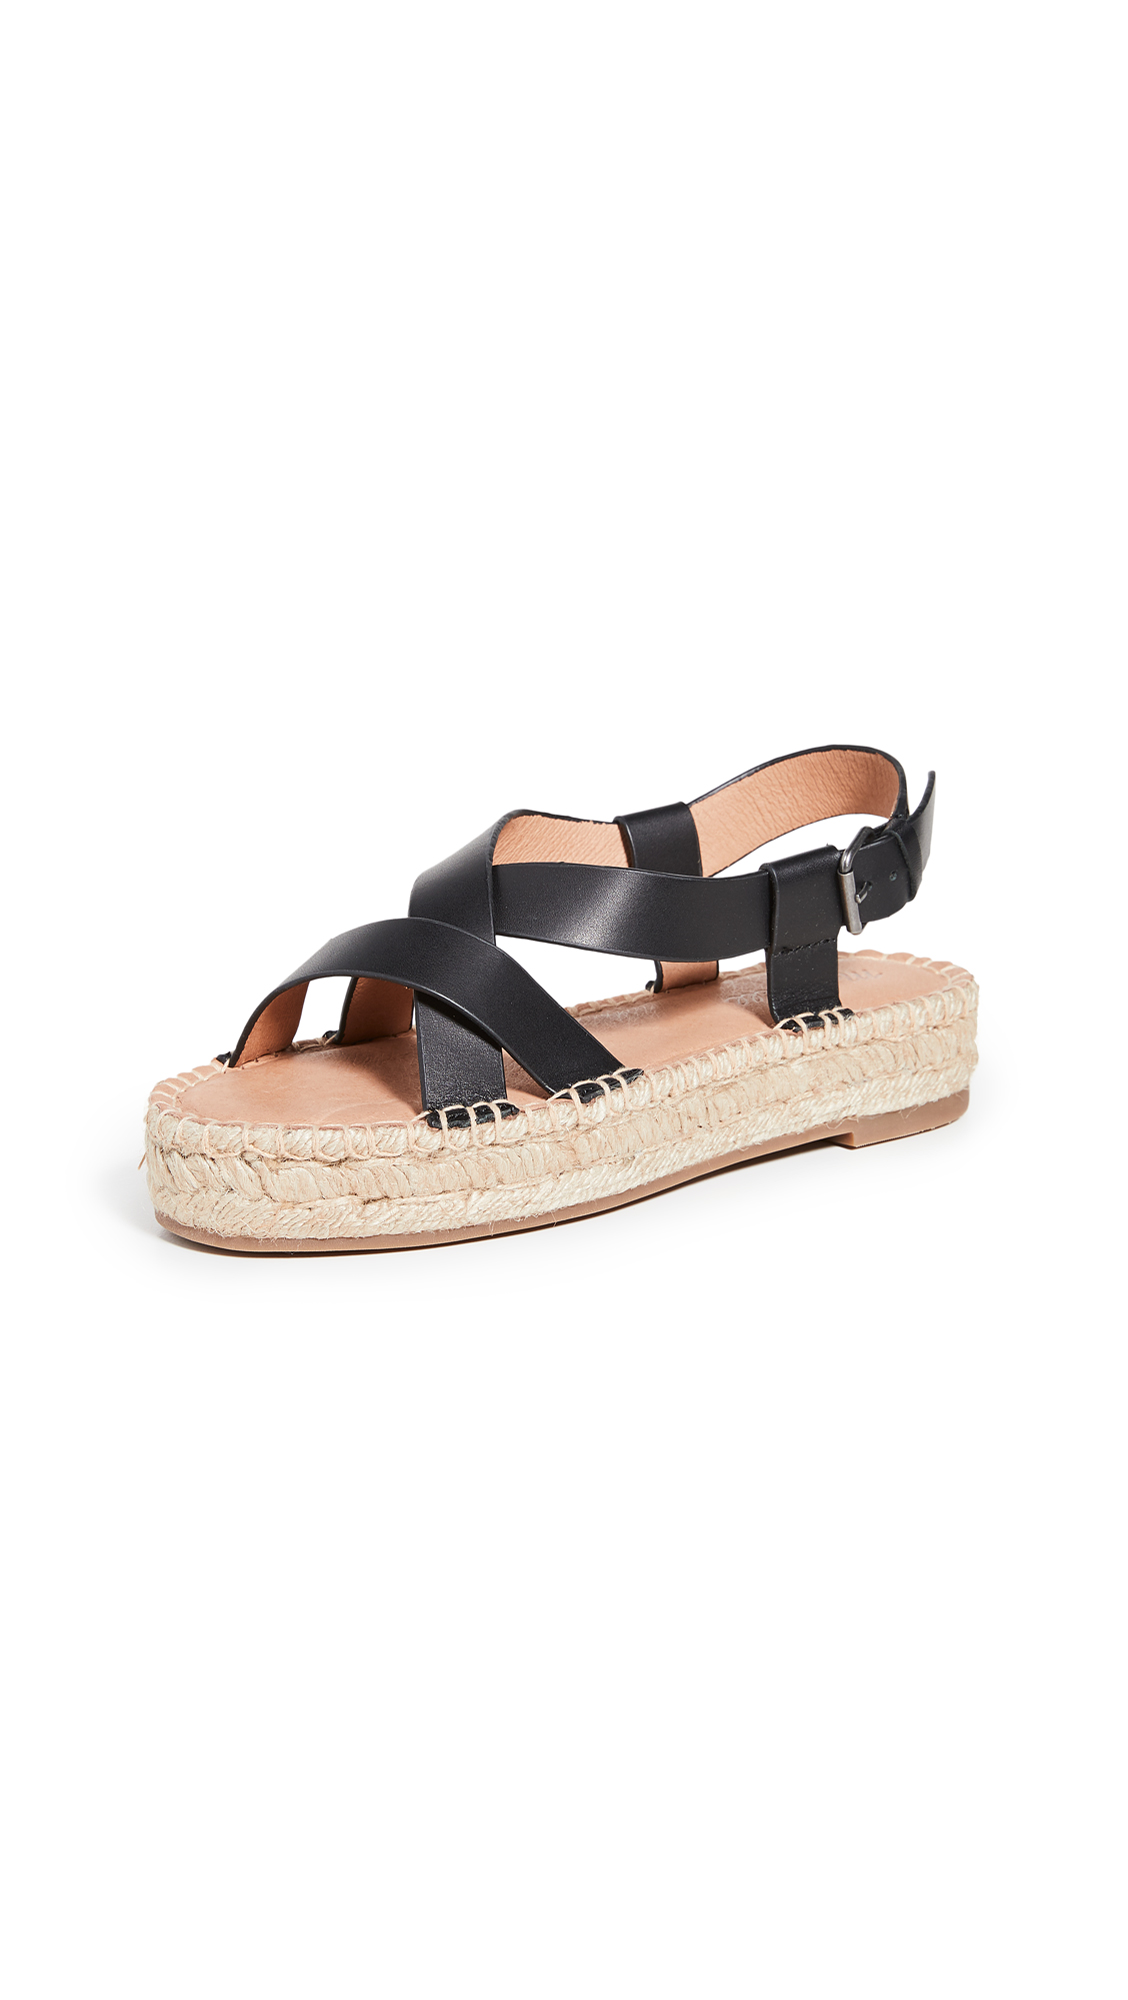 Madewell The Malia Espadrille Sandals